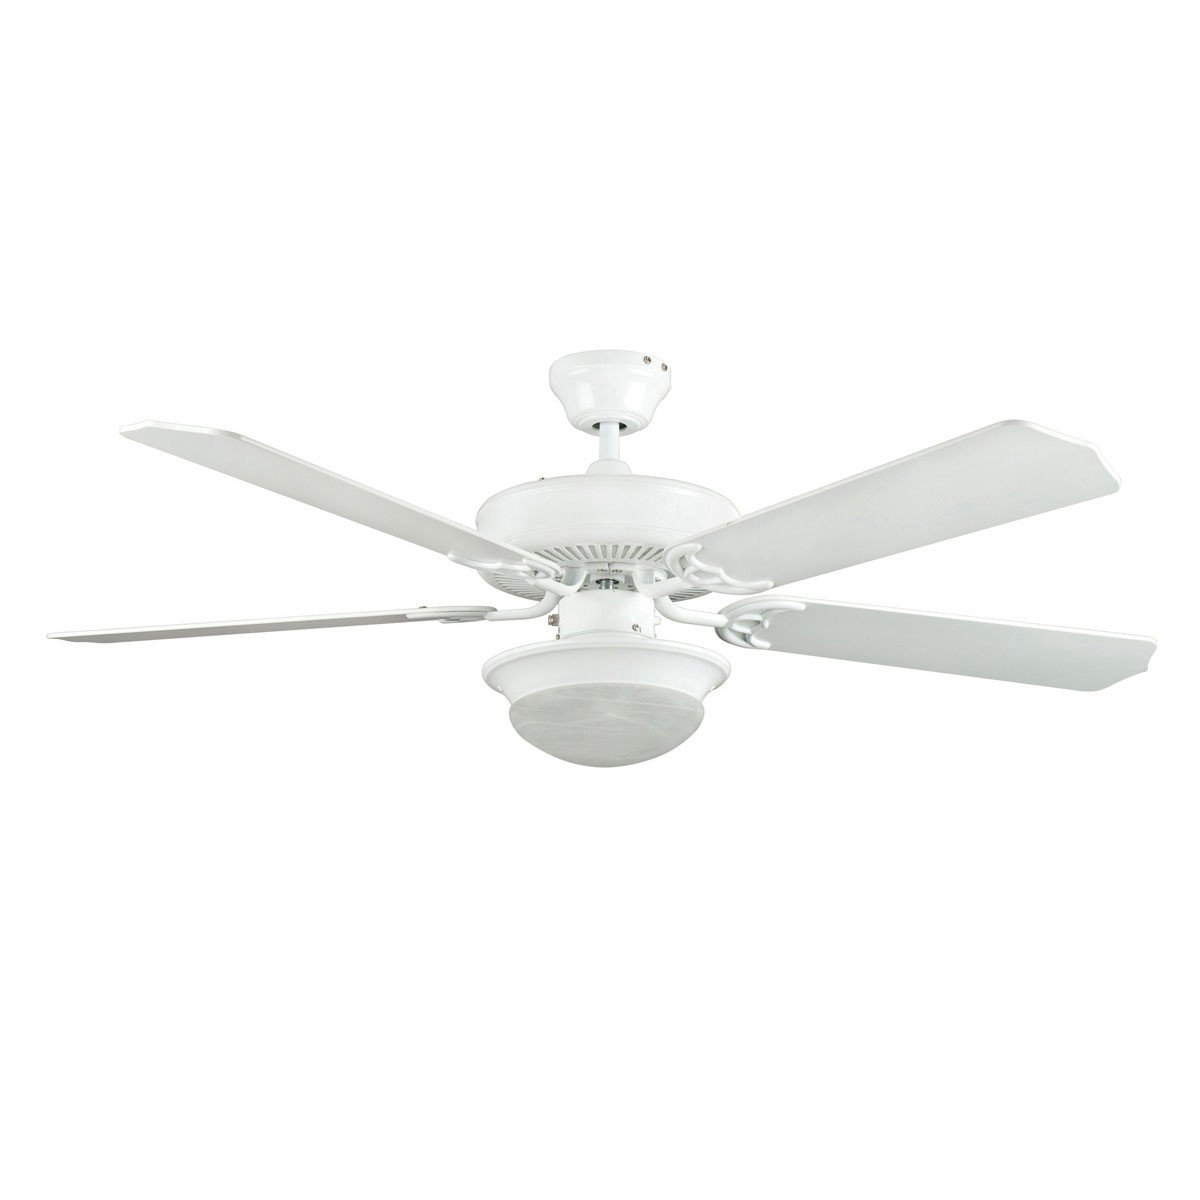 "Concord Fans 52"" Heritage Fusion White Modern Ceiling Fan with Round Light Kit"